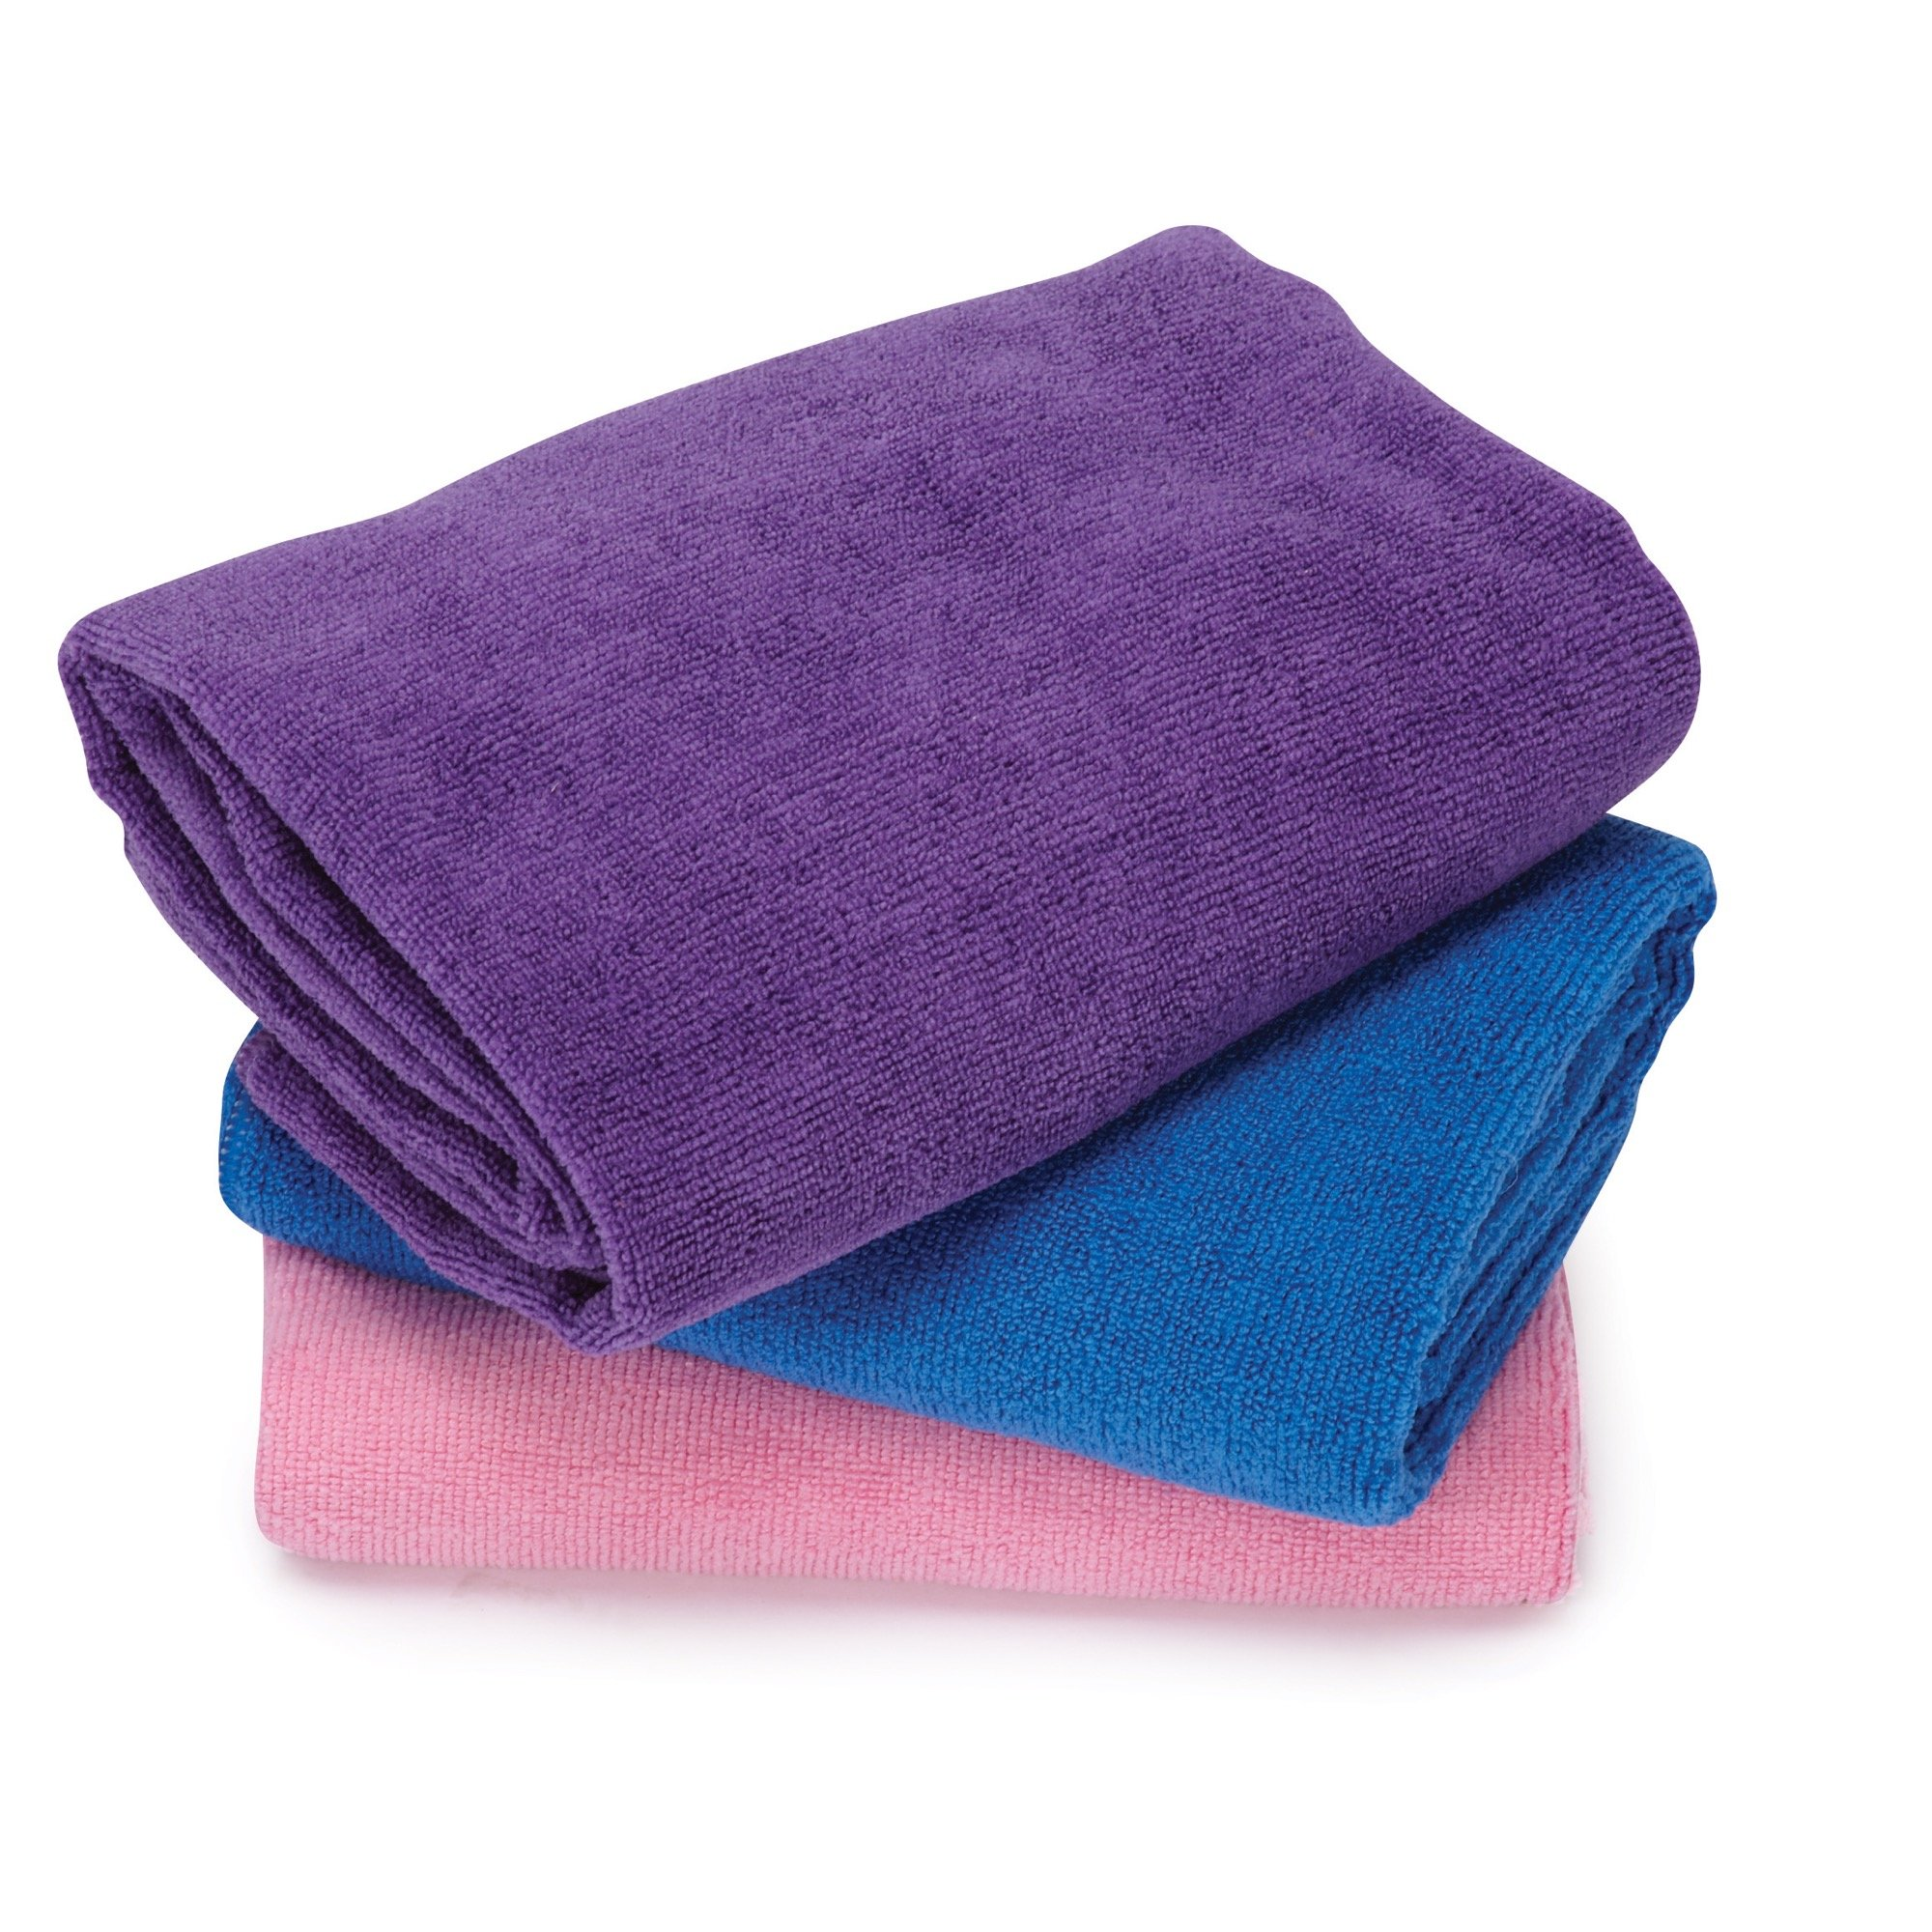 Top Performance  Microfiber Towels - Convenient, Brightly Colored Towels for Drying Pets After Bathing - 48'', 3-Pack